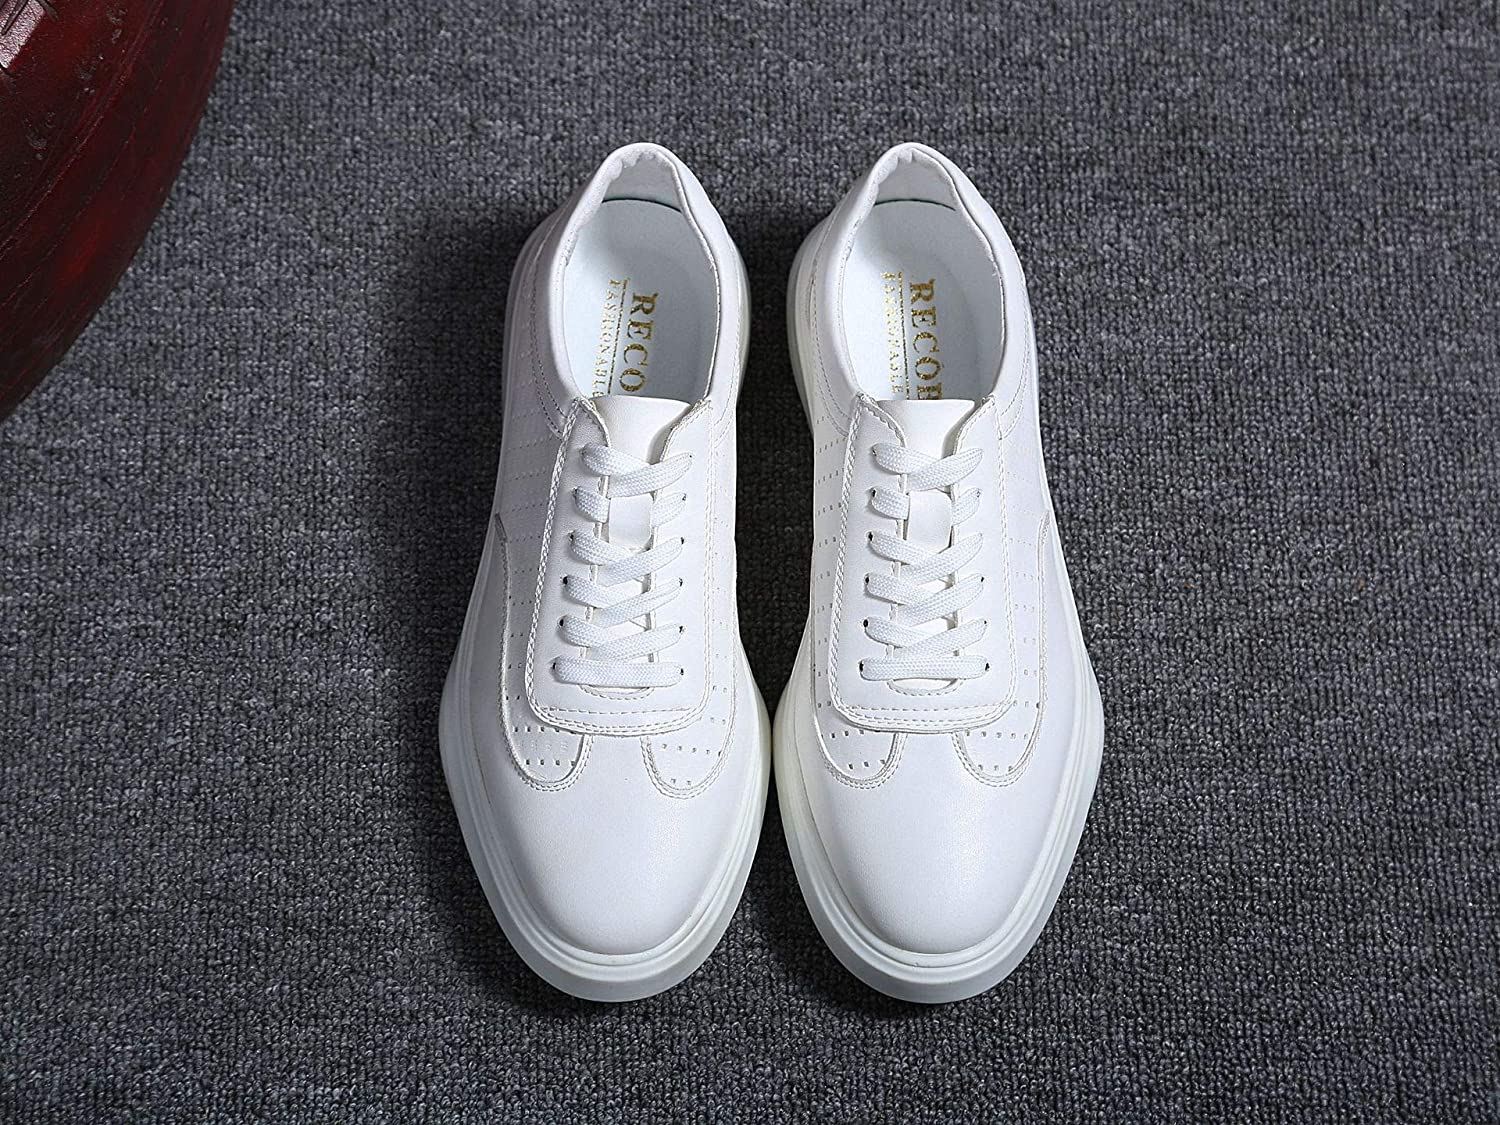 LOVDRAM Men's shoes New Thick-Soled White shoes Male Korean Fashion shoes Leather Sports Men'S shoes